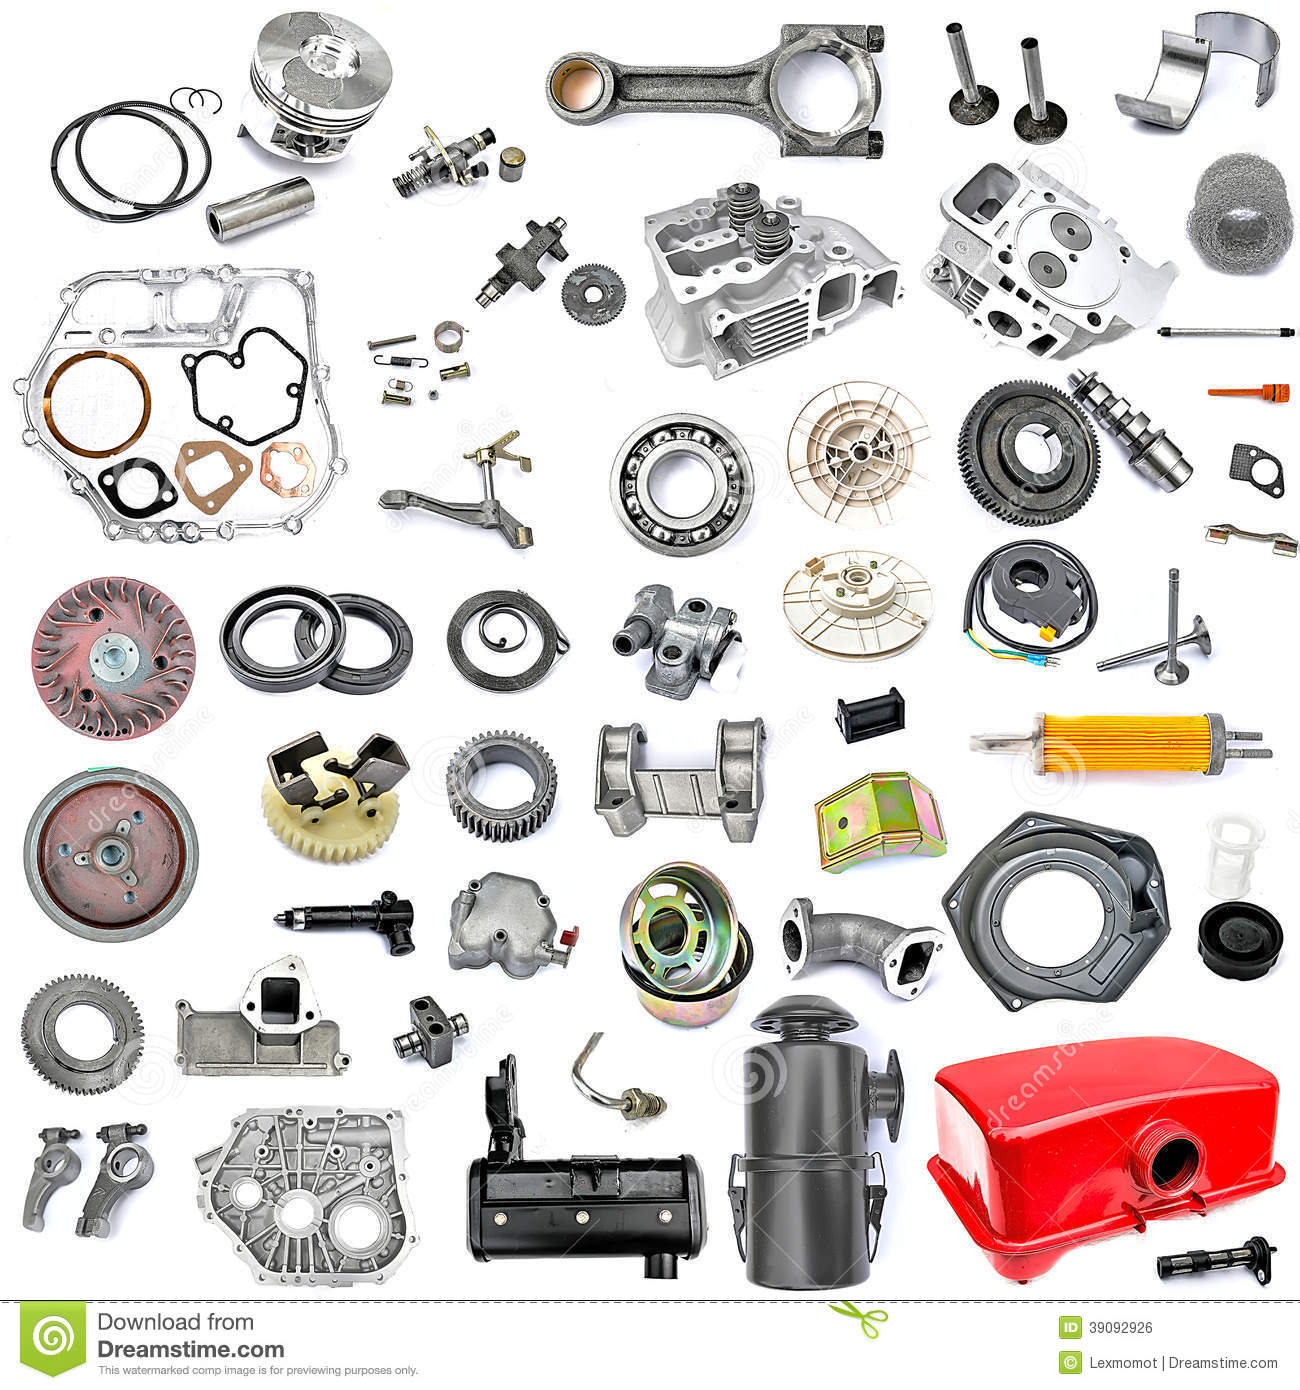 Spare parts business plan